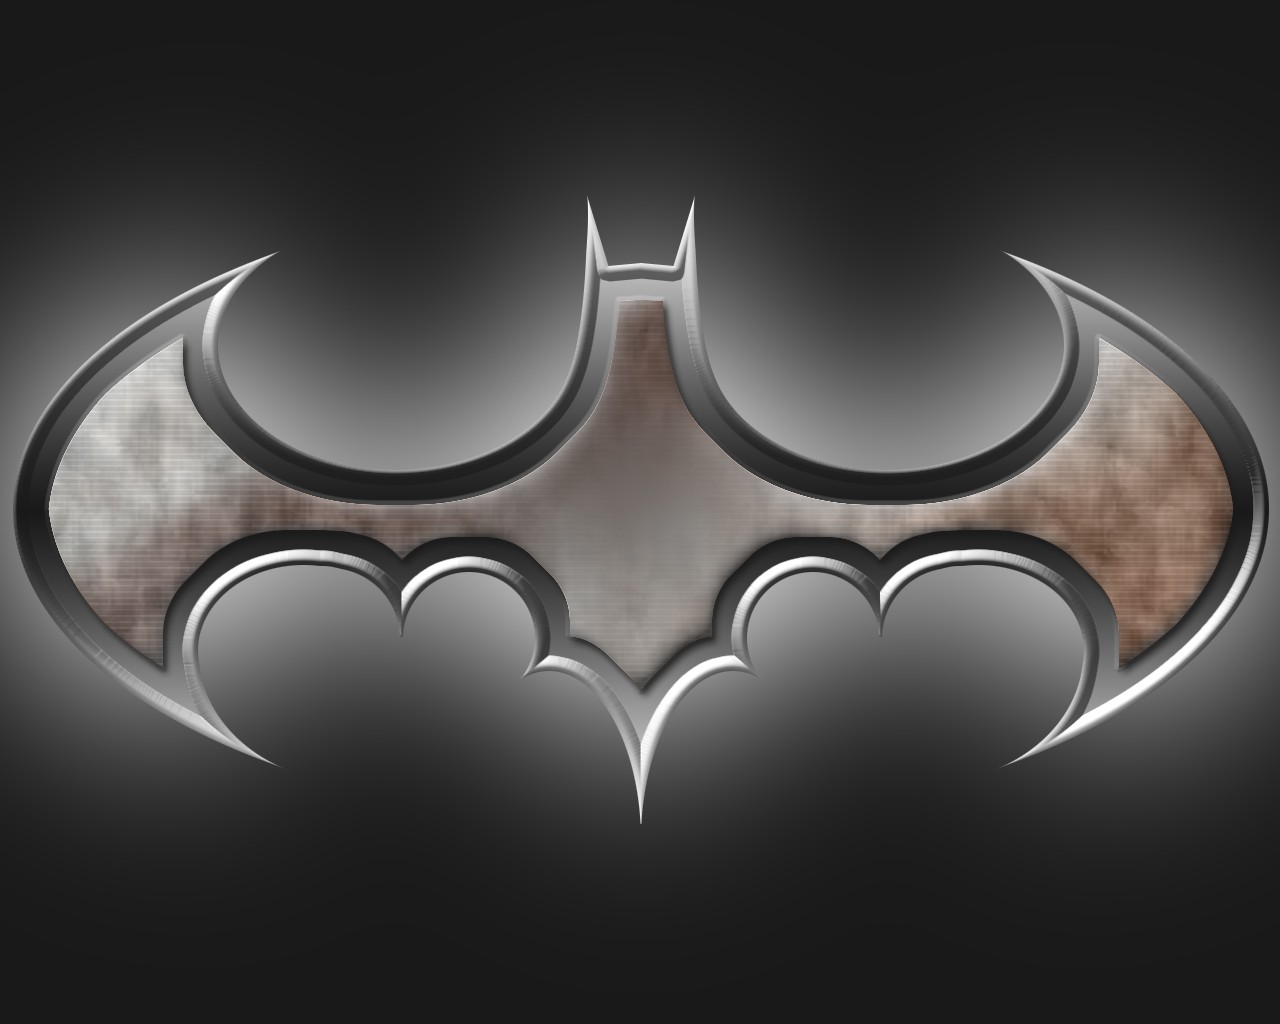 Logo Logo Wallpaper Collection BATMAN LOGO WALLPAPER COLLECTION 1280x1024